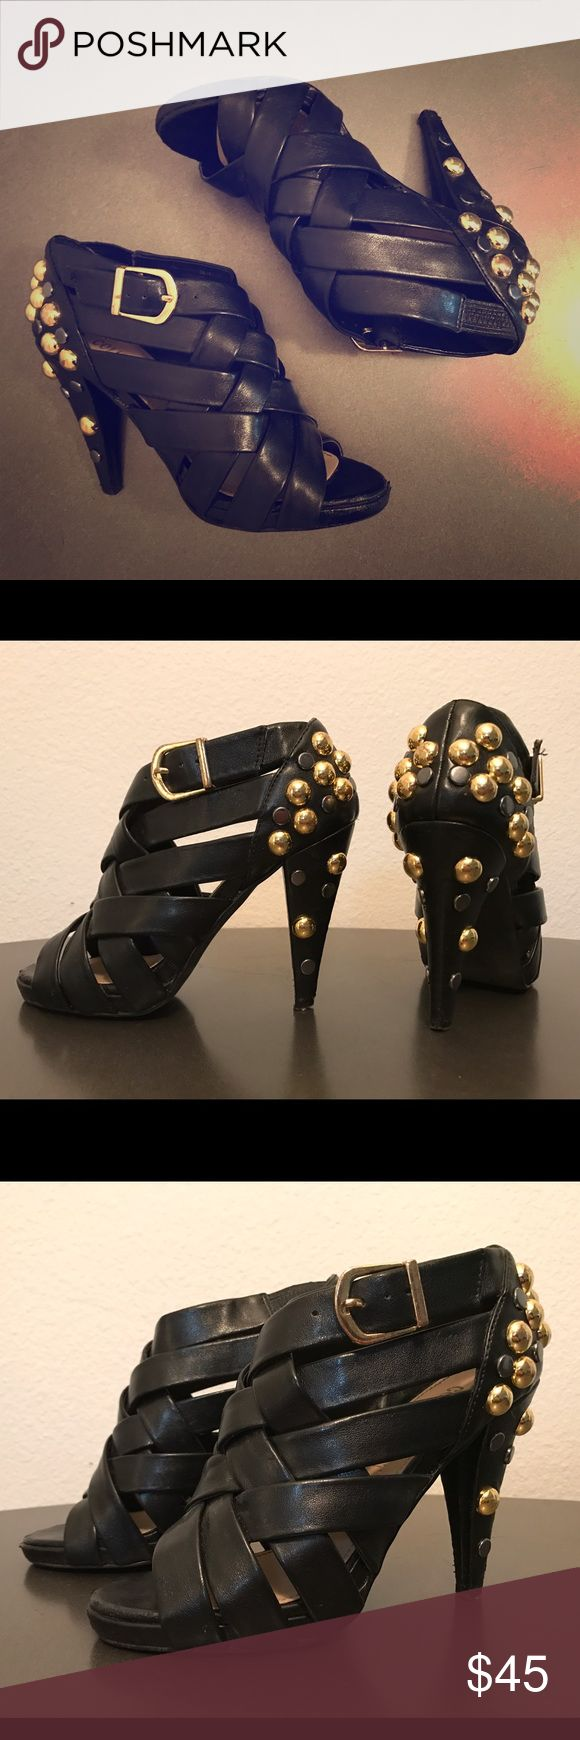 Colin Stuart Strappy Heels w Gold & Black Studs 5 These Colin Stuart's makes a statement with the straps, gold buckle and the studded heel! They are super comfortable and will dress up any outfit! Some scuffs oh heel and tip. Colin Stuart Shoes Heels